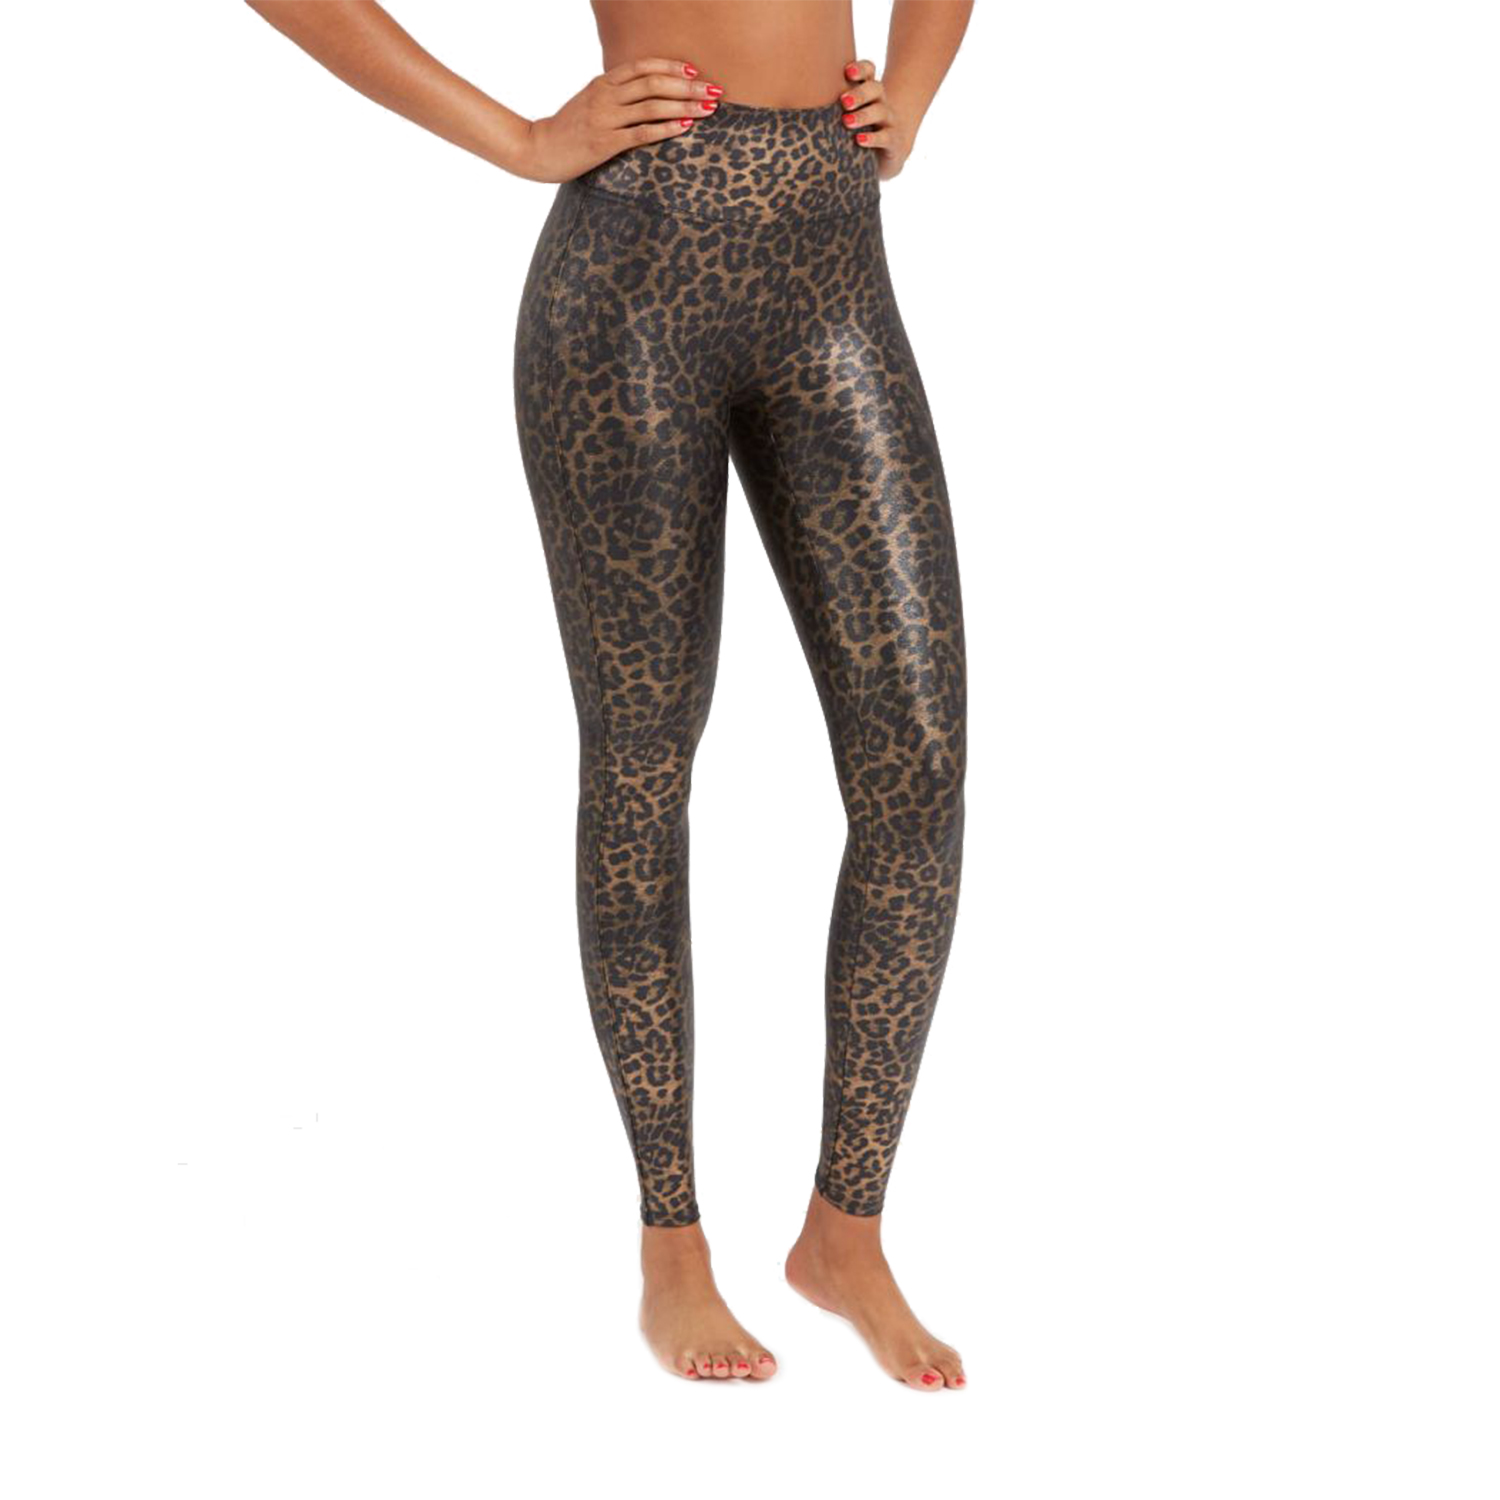 Women's High-Waisted Leopard Leggings